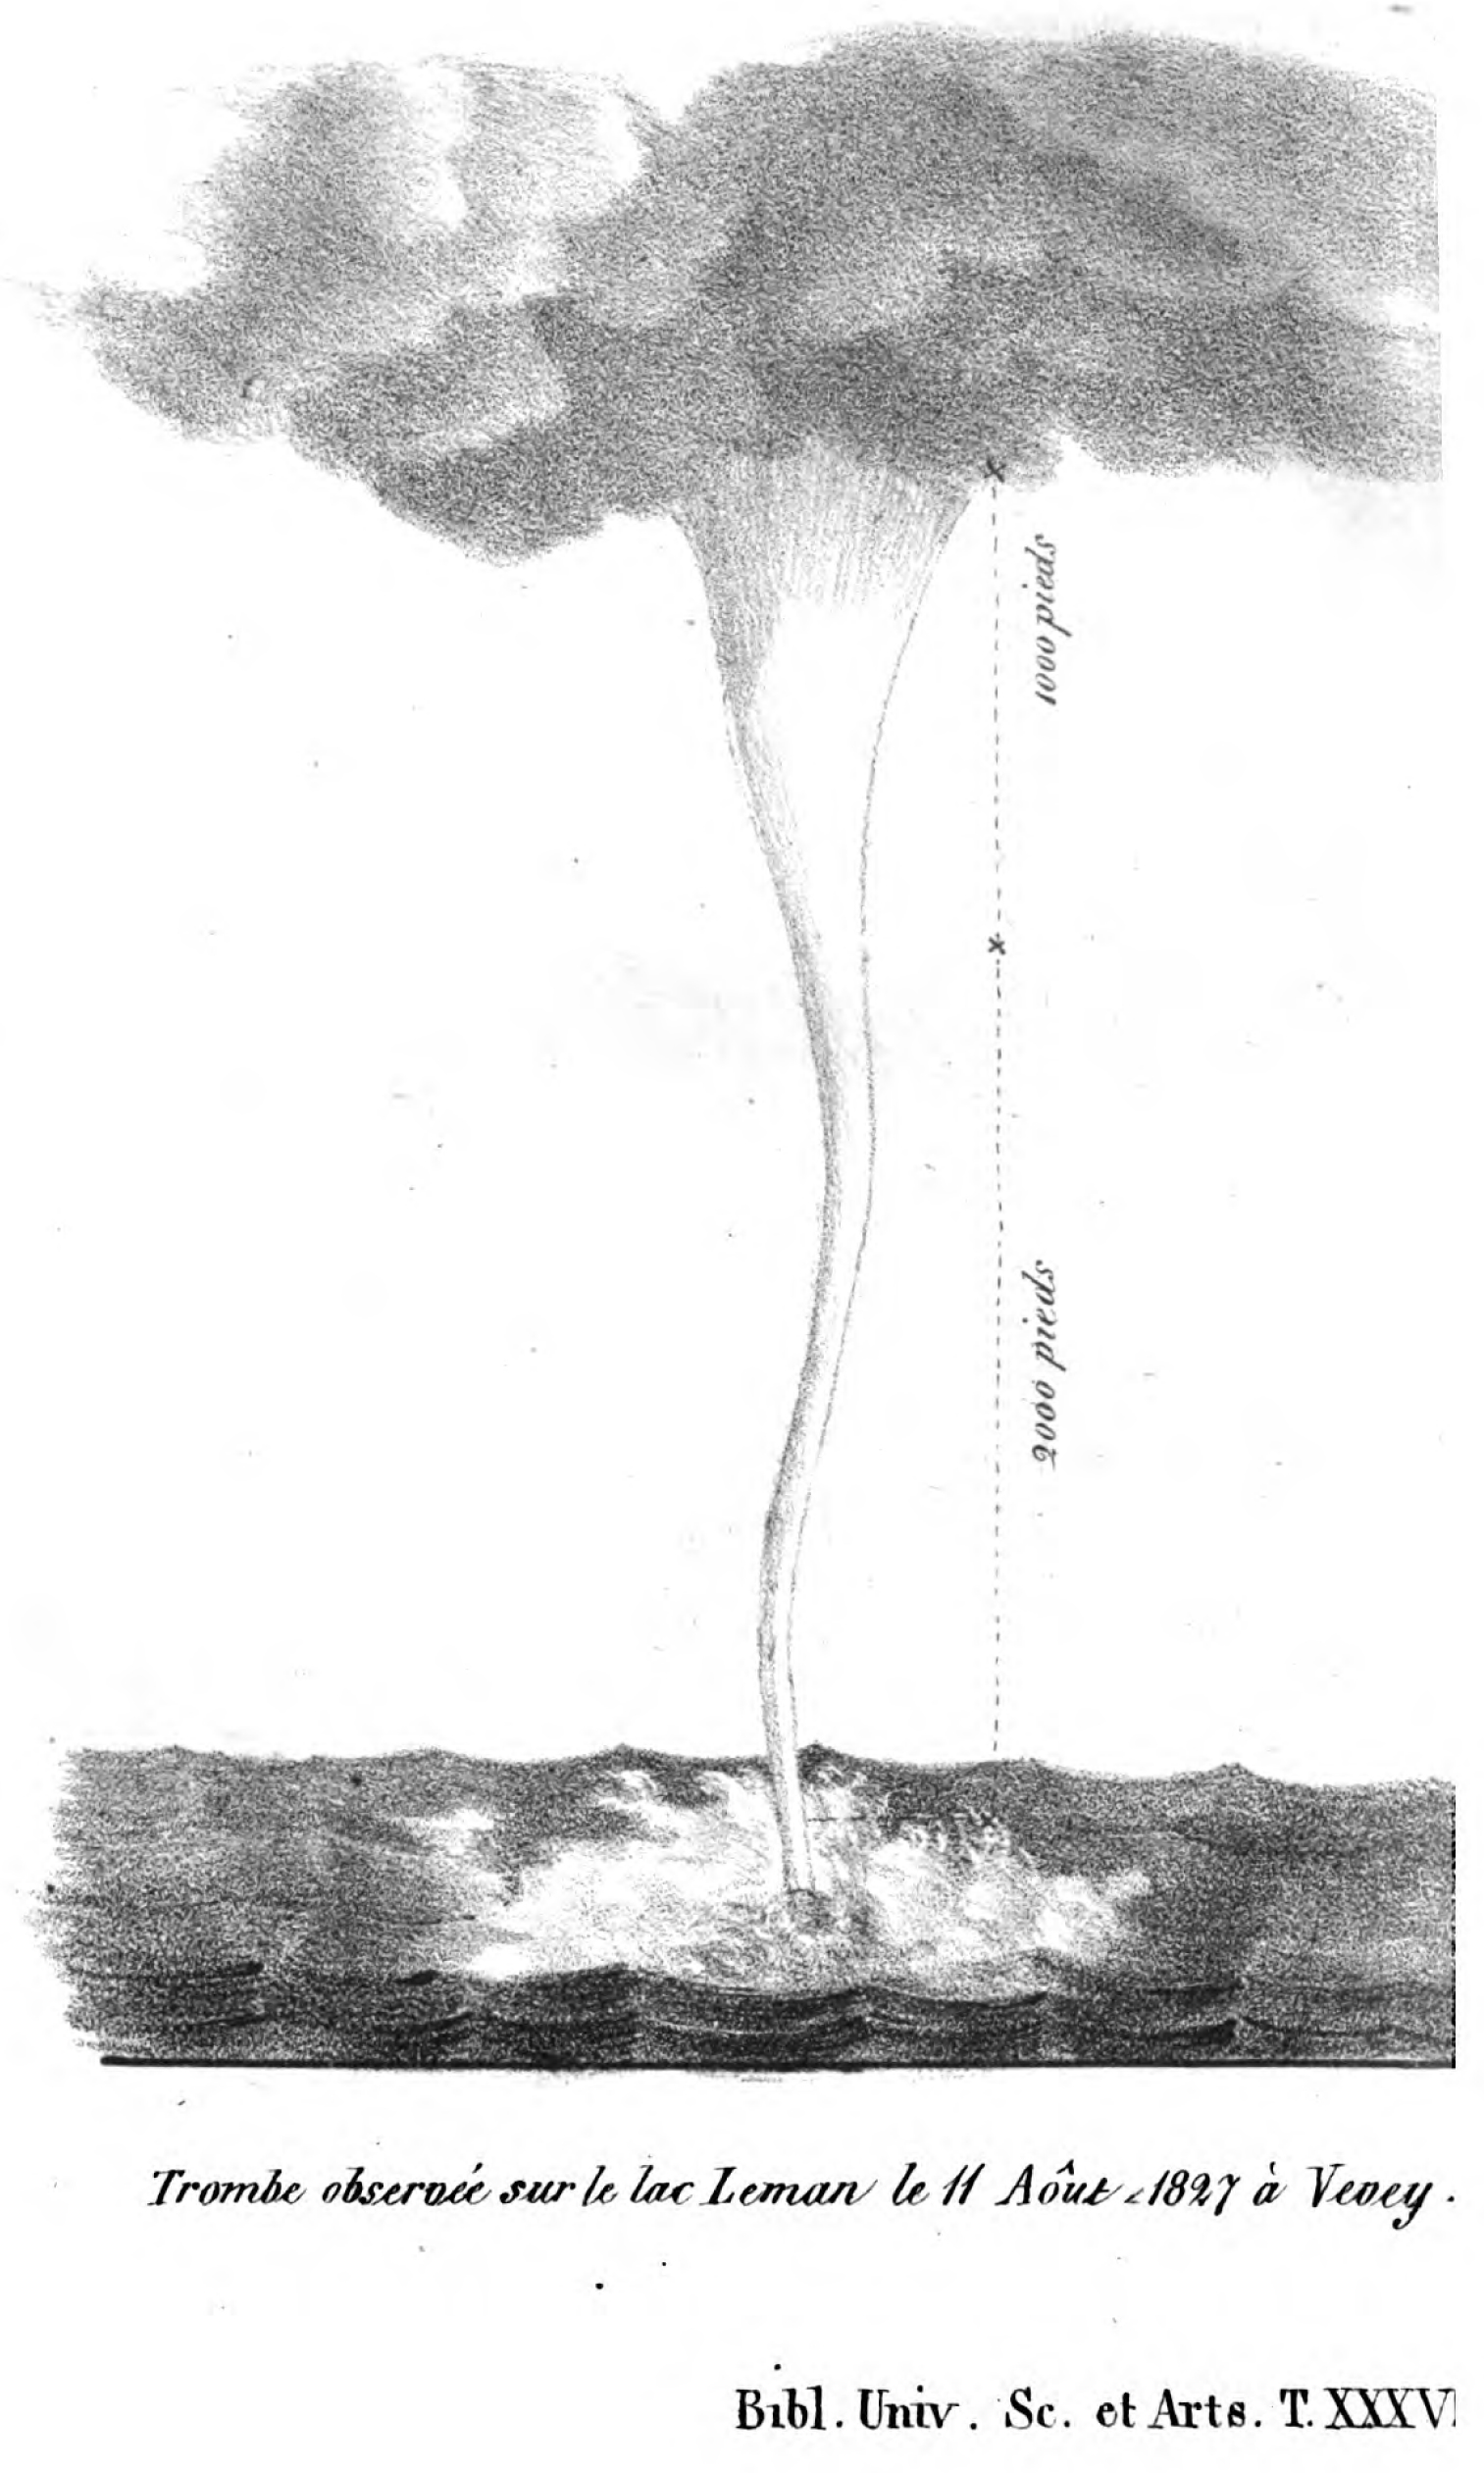 "Waterspout observed over  Lake Geneva  on 11 August 1827 from  Vevey  by Prof. Mercanton at 18:45.    ""From the middle of the cloud, little to the right of  St. Gingolph , a portion of this cloud took suddenly a vertically direction: the form was that of a revers cone, and the colour was red-orange due to the reflection of the sunset , this  appearance  attracted all eyes immediately."" (Mercanton 1827, 142 – 143)   source: Mercanton, M., 1827: Description d'une trombe observee sur le Lac Leman, le 11 aout 1827: par Mr. le Prof. Mercaton. Bibliotheque Universelle des Sciences, Belles-Letters, et Arts, 36, 142 – 145. [  PDF   via  Google Books ]"